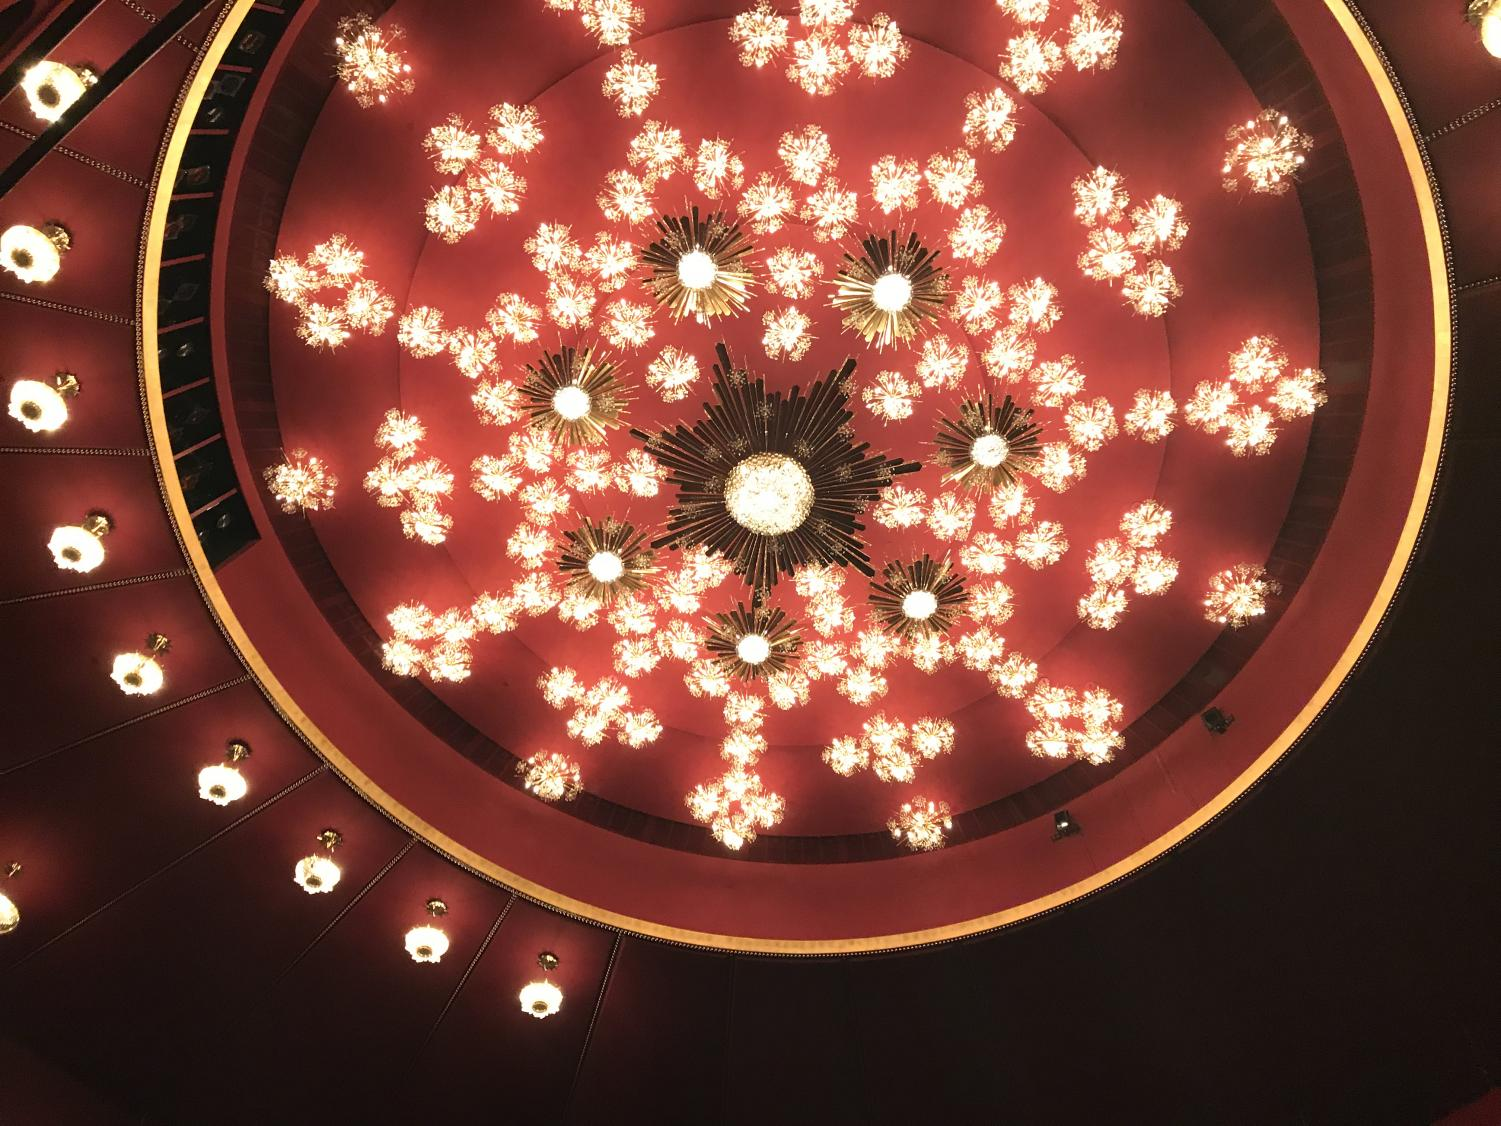 The+grand+crystal+chandelier+donated+by+Austria+located+in+the+Kennedy+Center+for+the+Performing+Arts.+